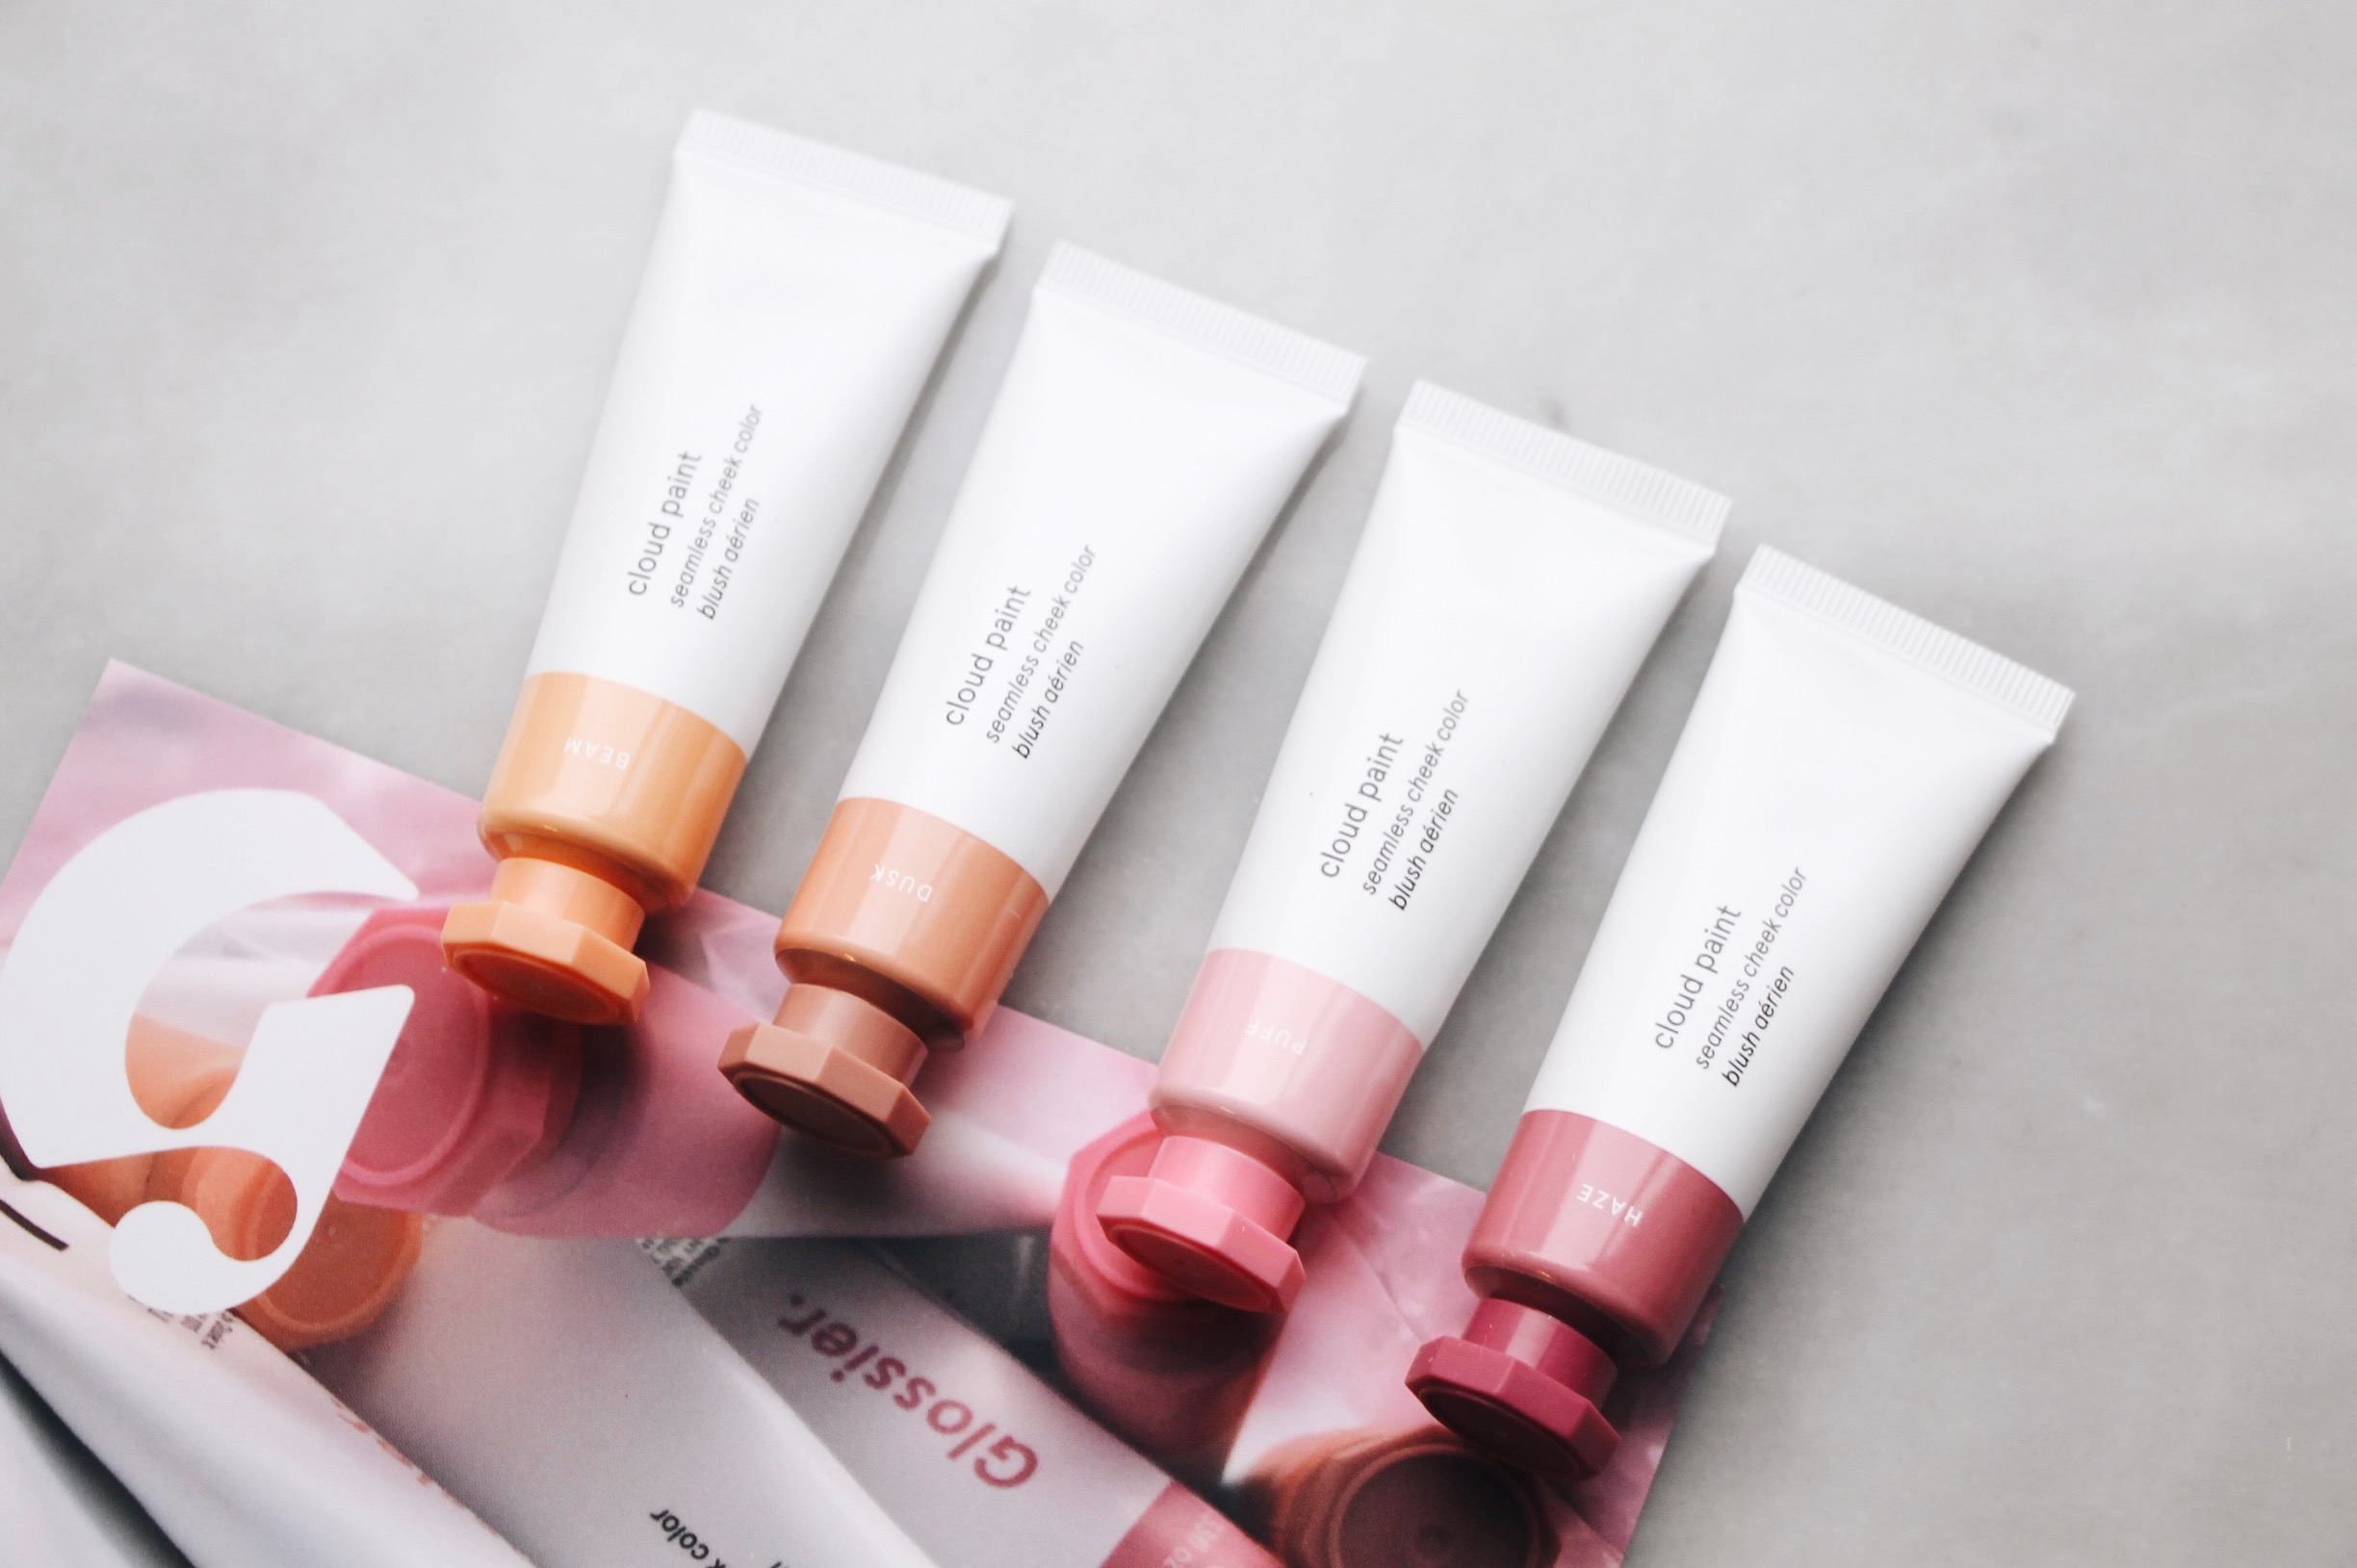 The Super Pack by Glossier #20